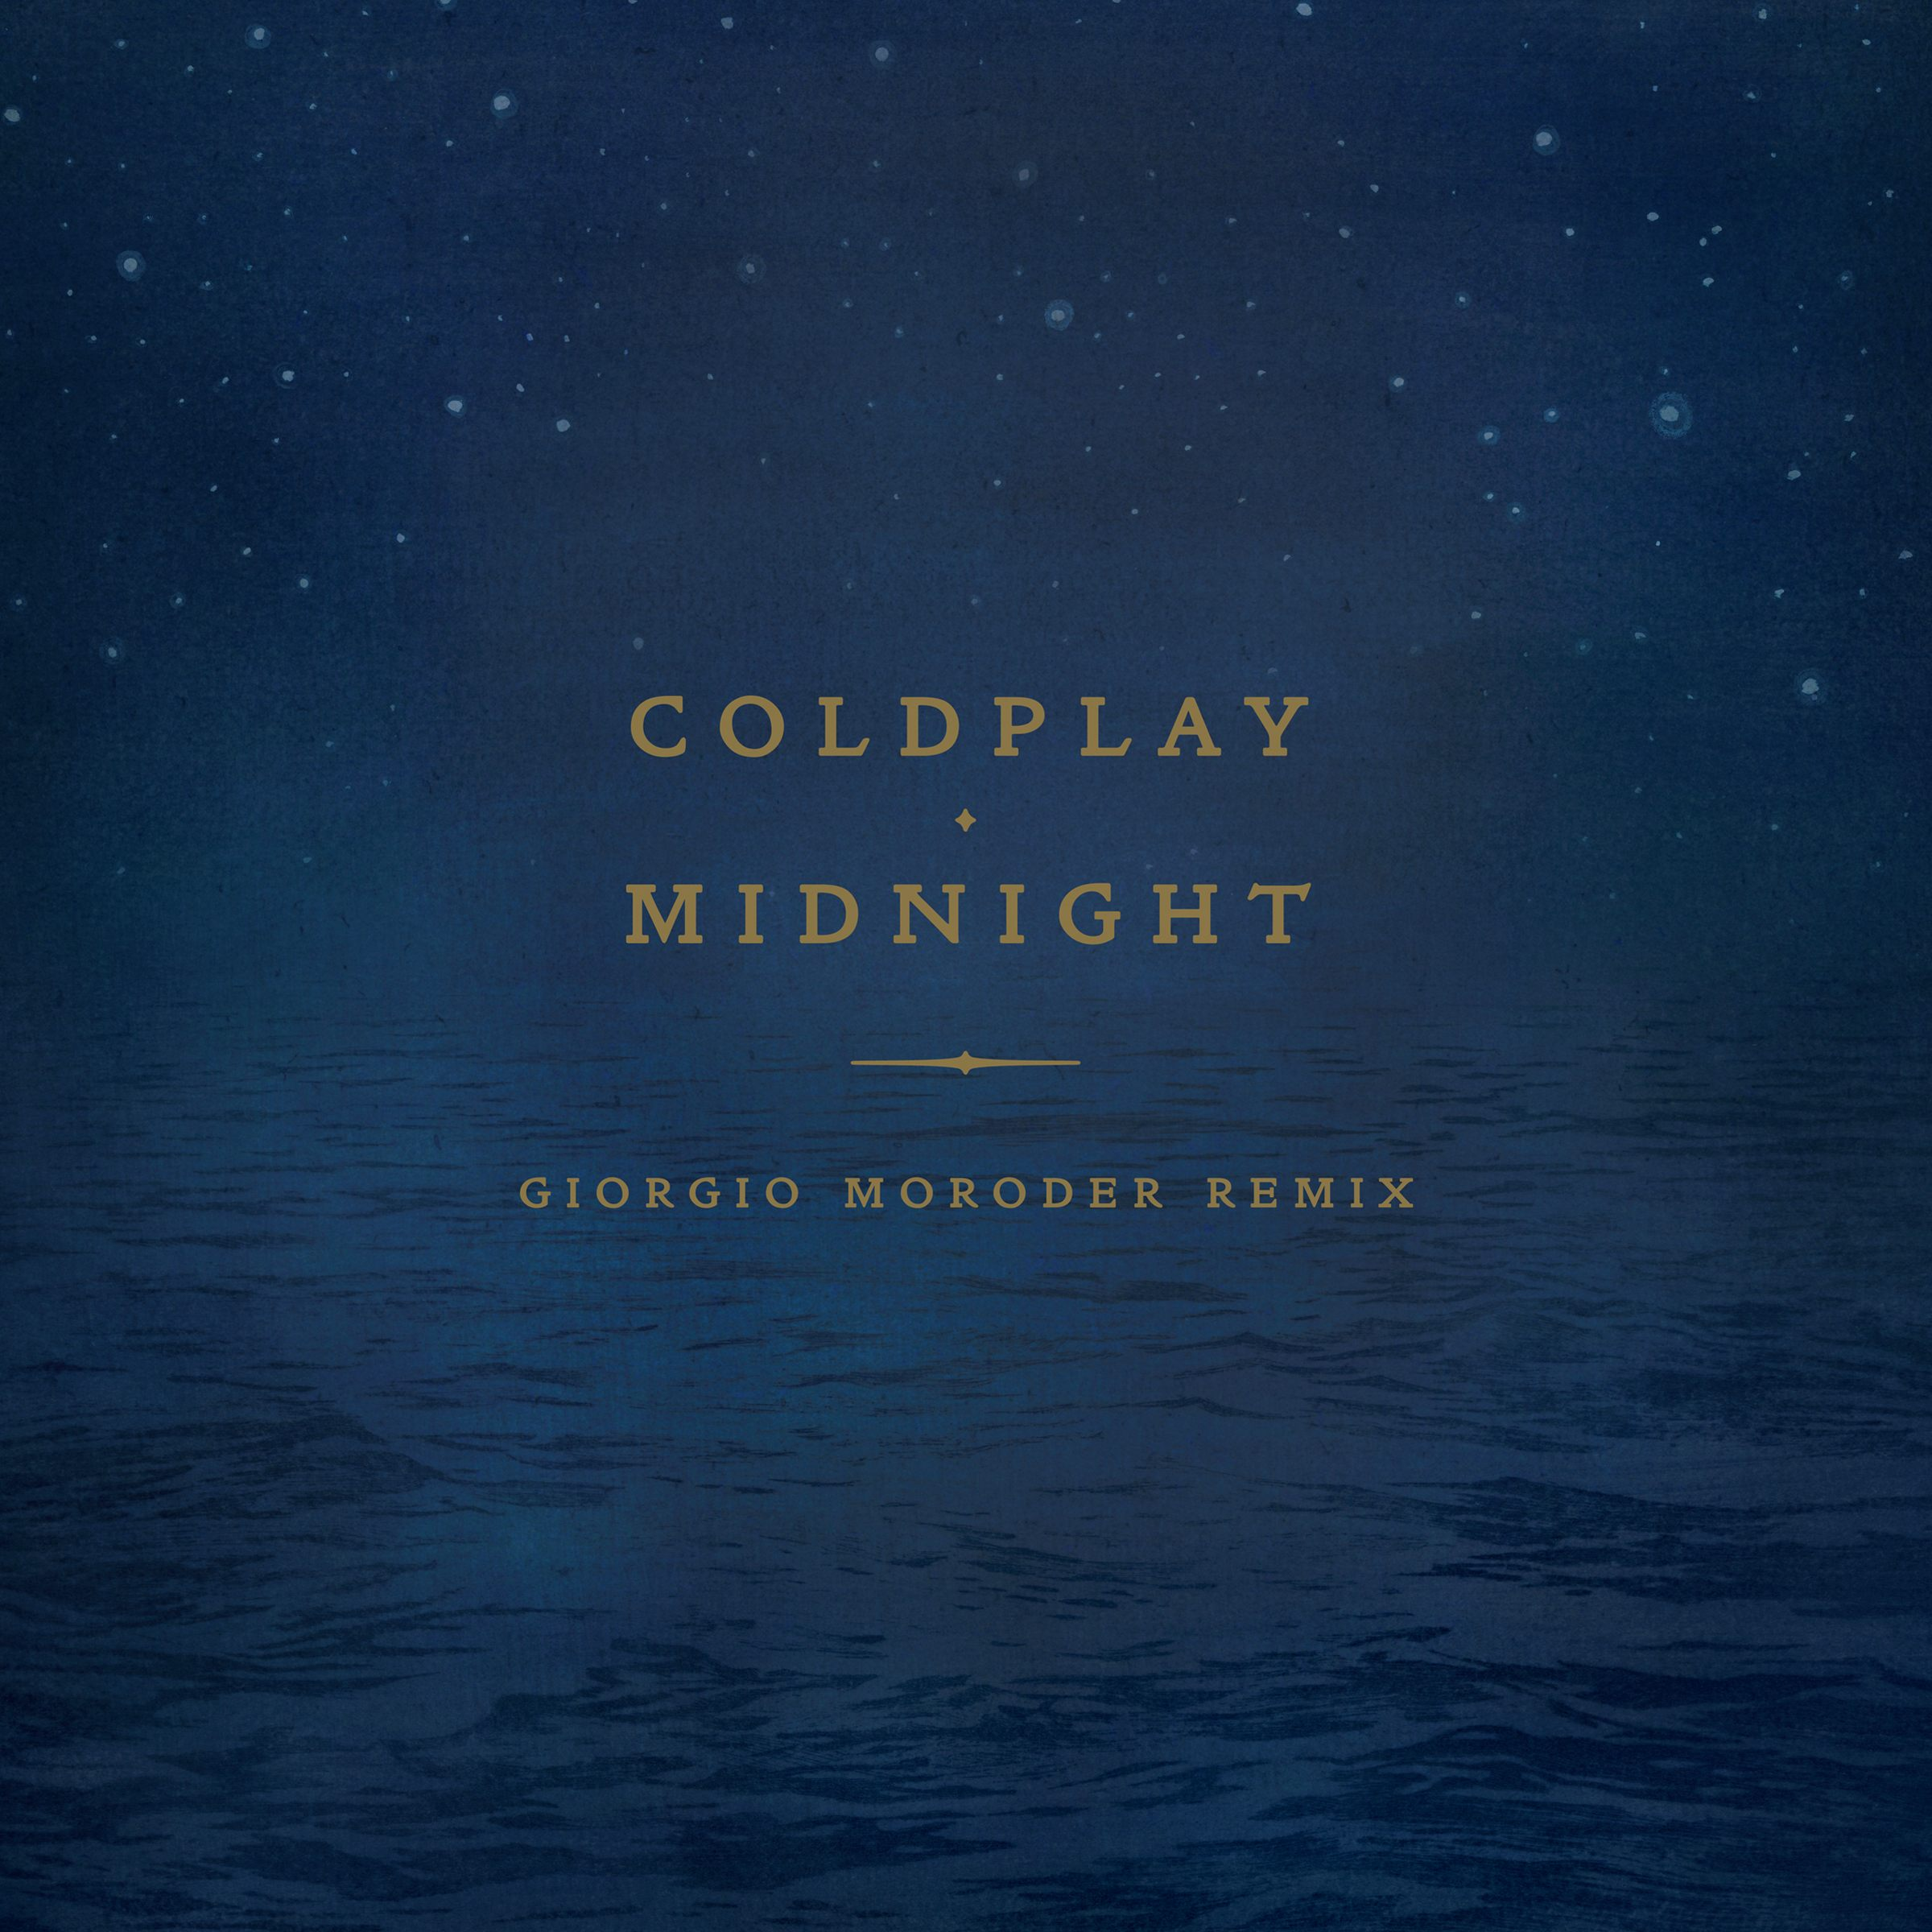 Coldplay Announce Giorgio Moroder Remix of 'Midnight'